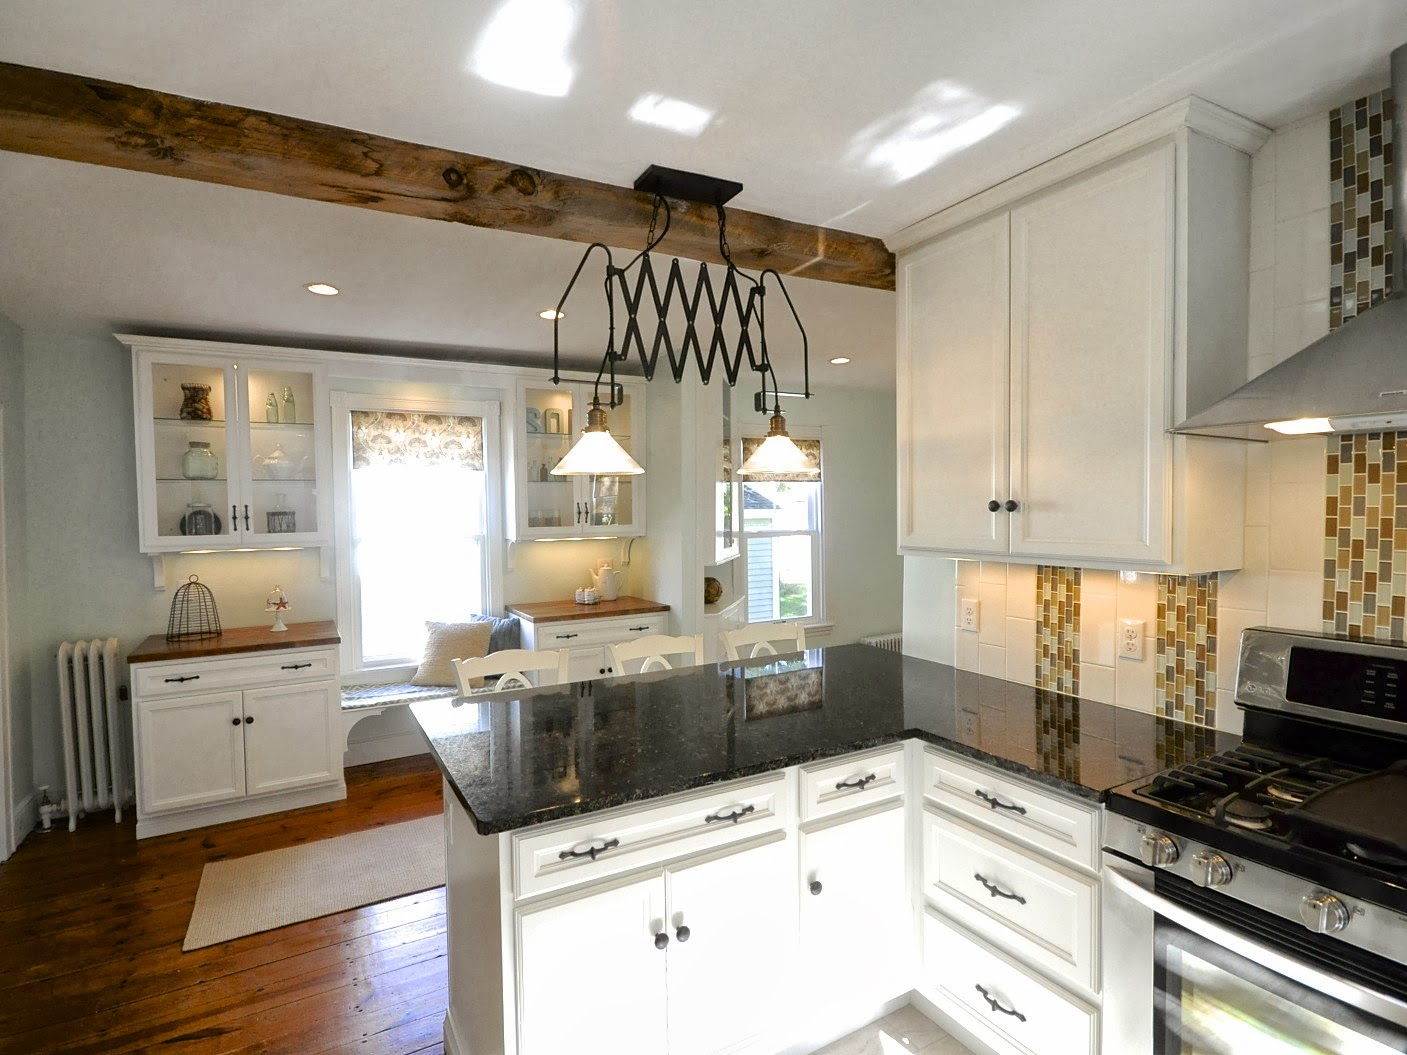 updating kitchen cabinets hydroponics herb garden remodelaholic | creating an open and dining room